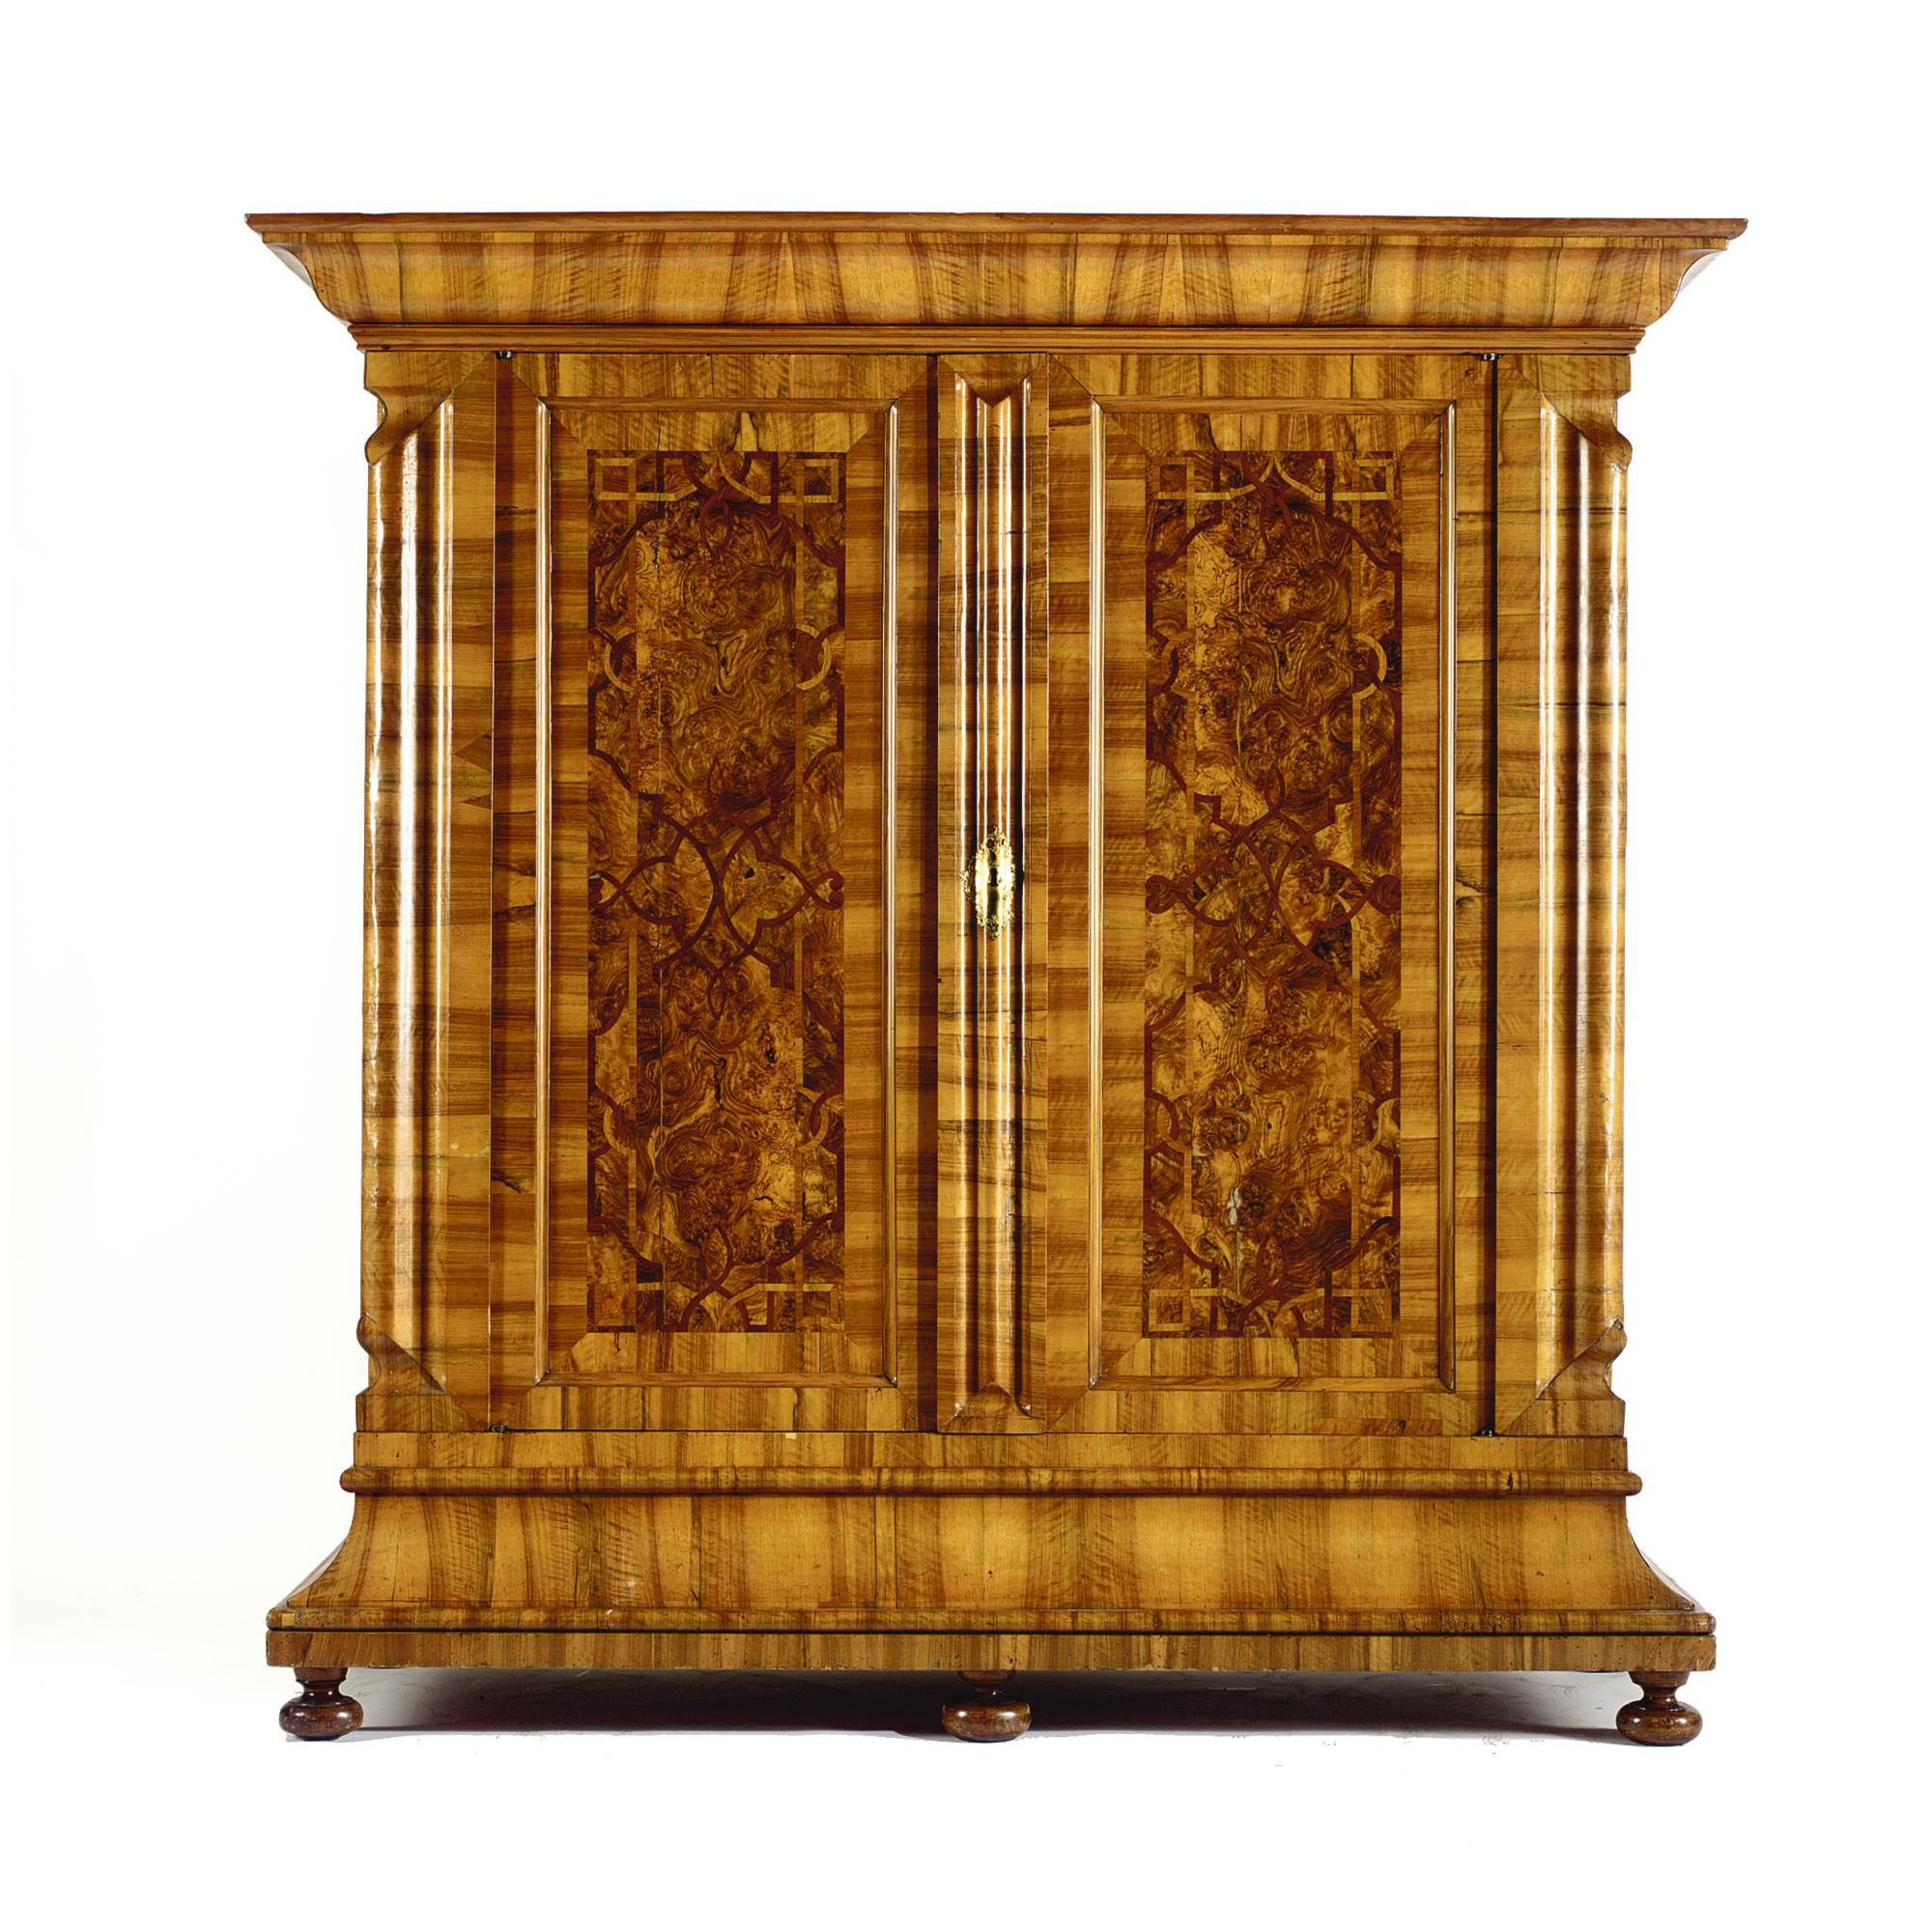 Meubles Zurich A Swiss Walnut Burr Walnut And Fruitwood Banded Nasenschrank